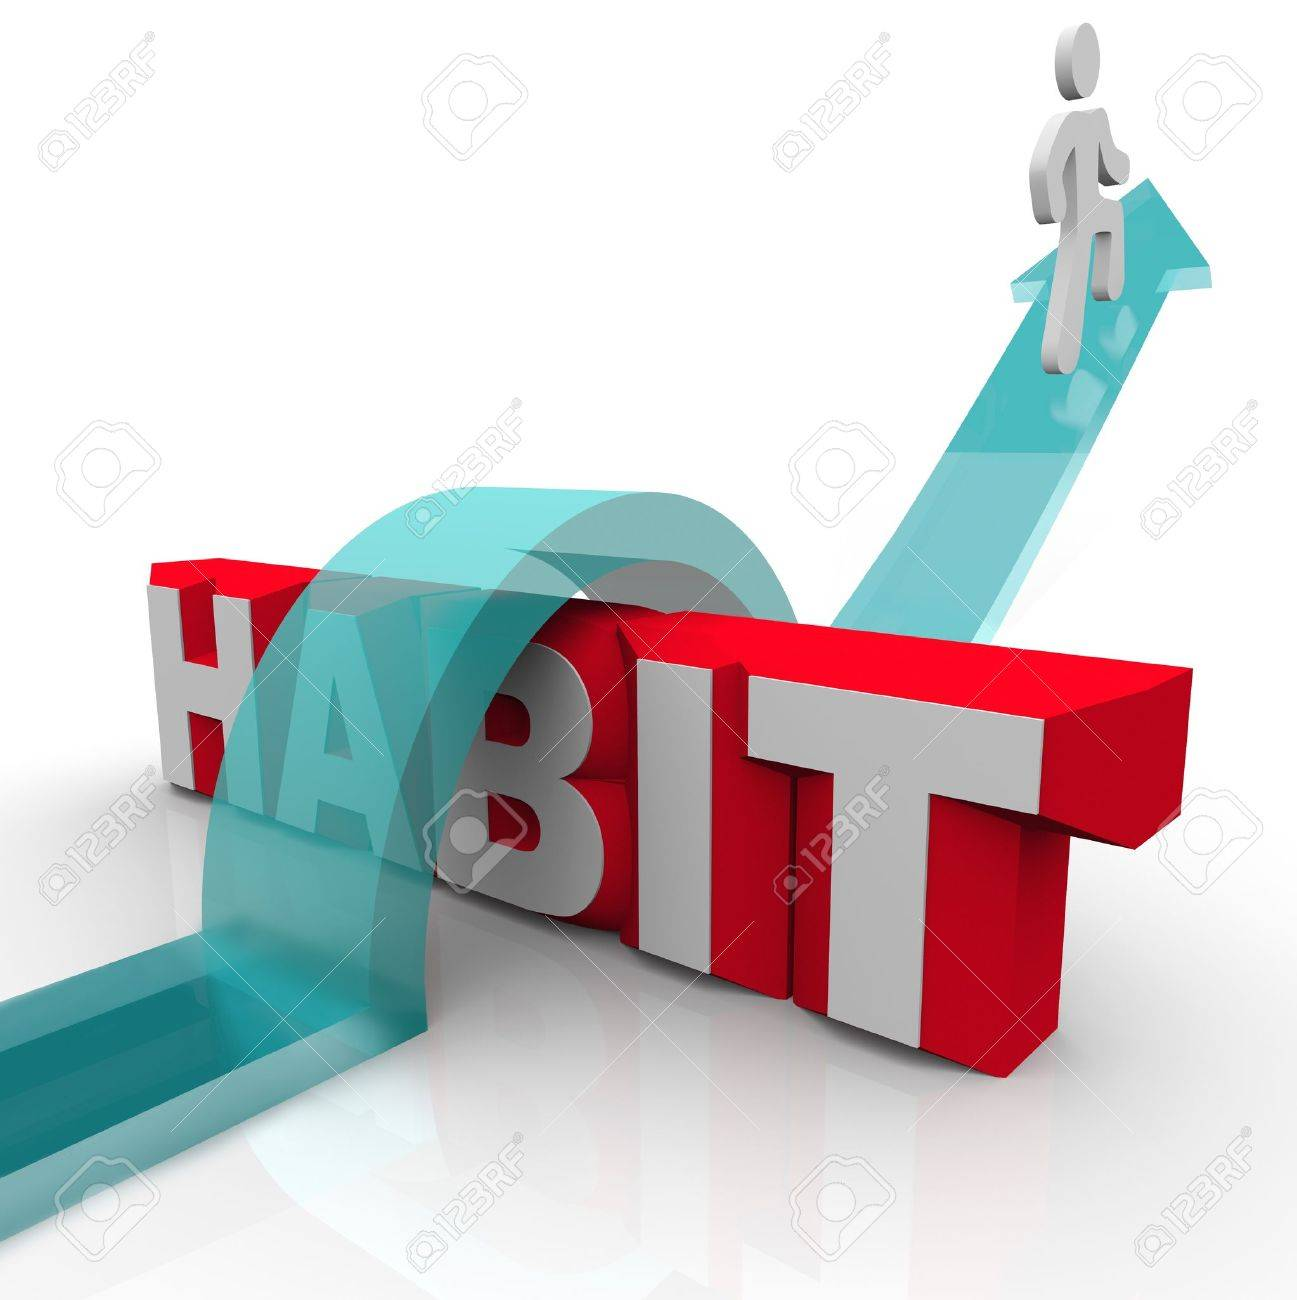 A man jumps over the word habit on an arrow, illustrating the bravery and courage needed to overcome and conquer an addiction or regular pattern that is harmful or boring Stock Photo - 18287407